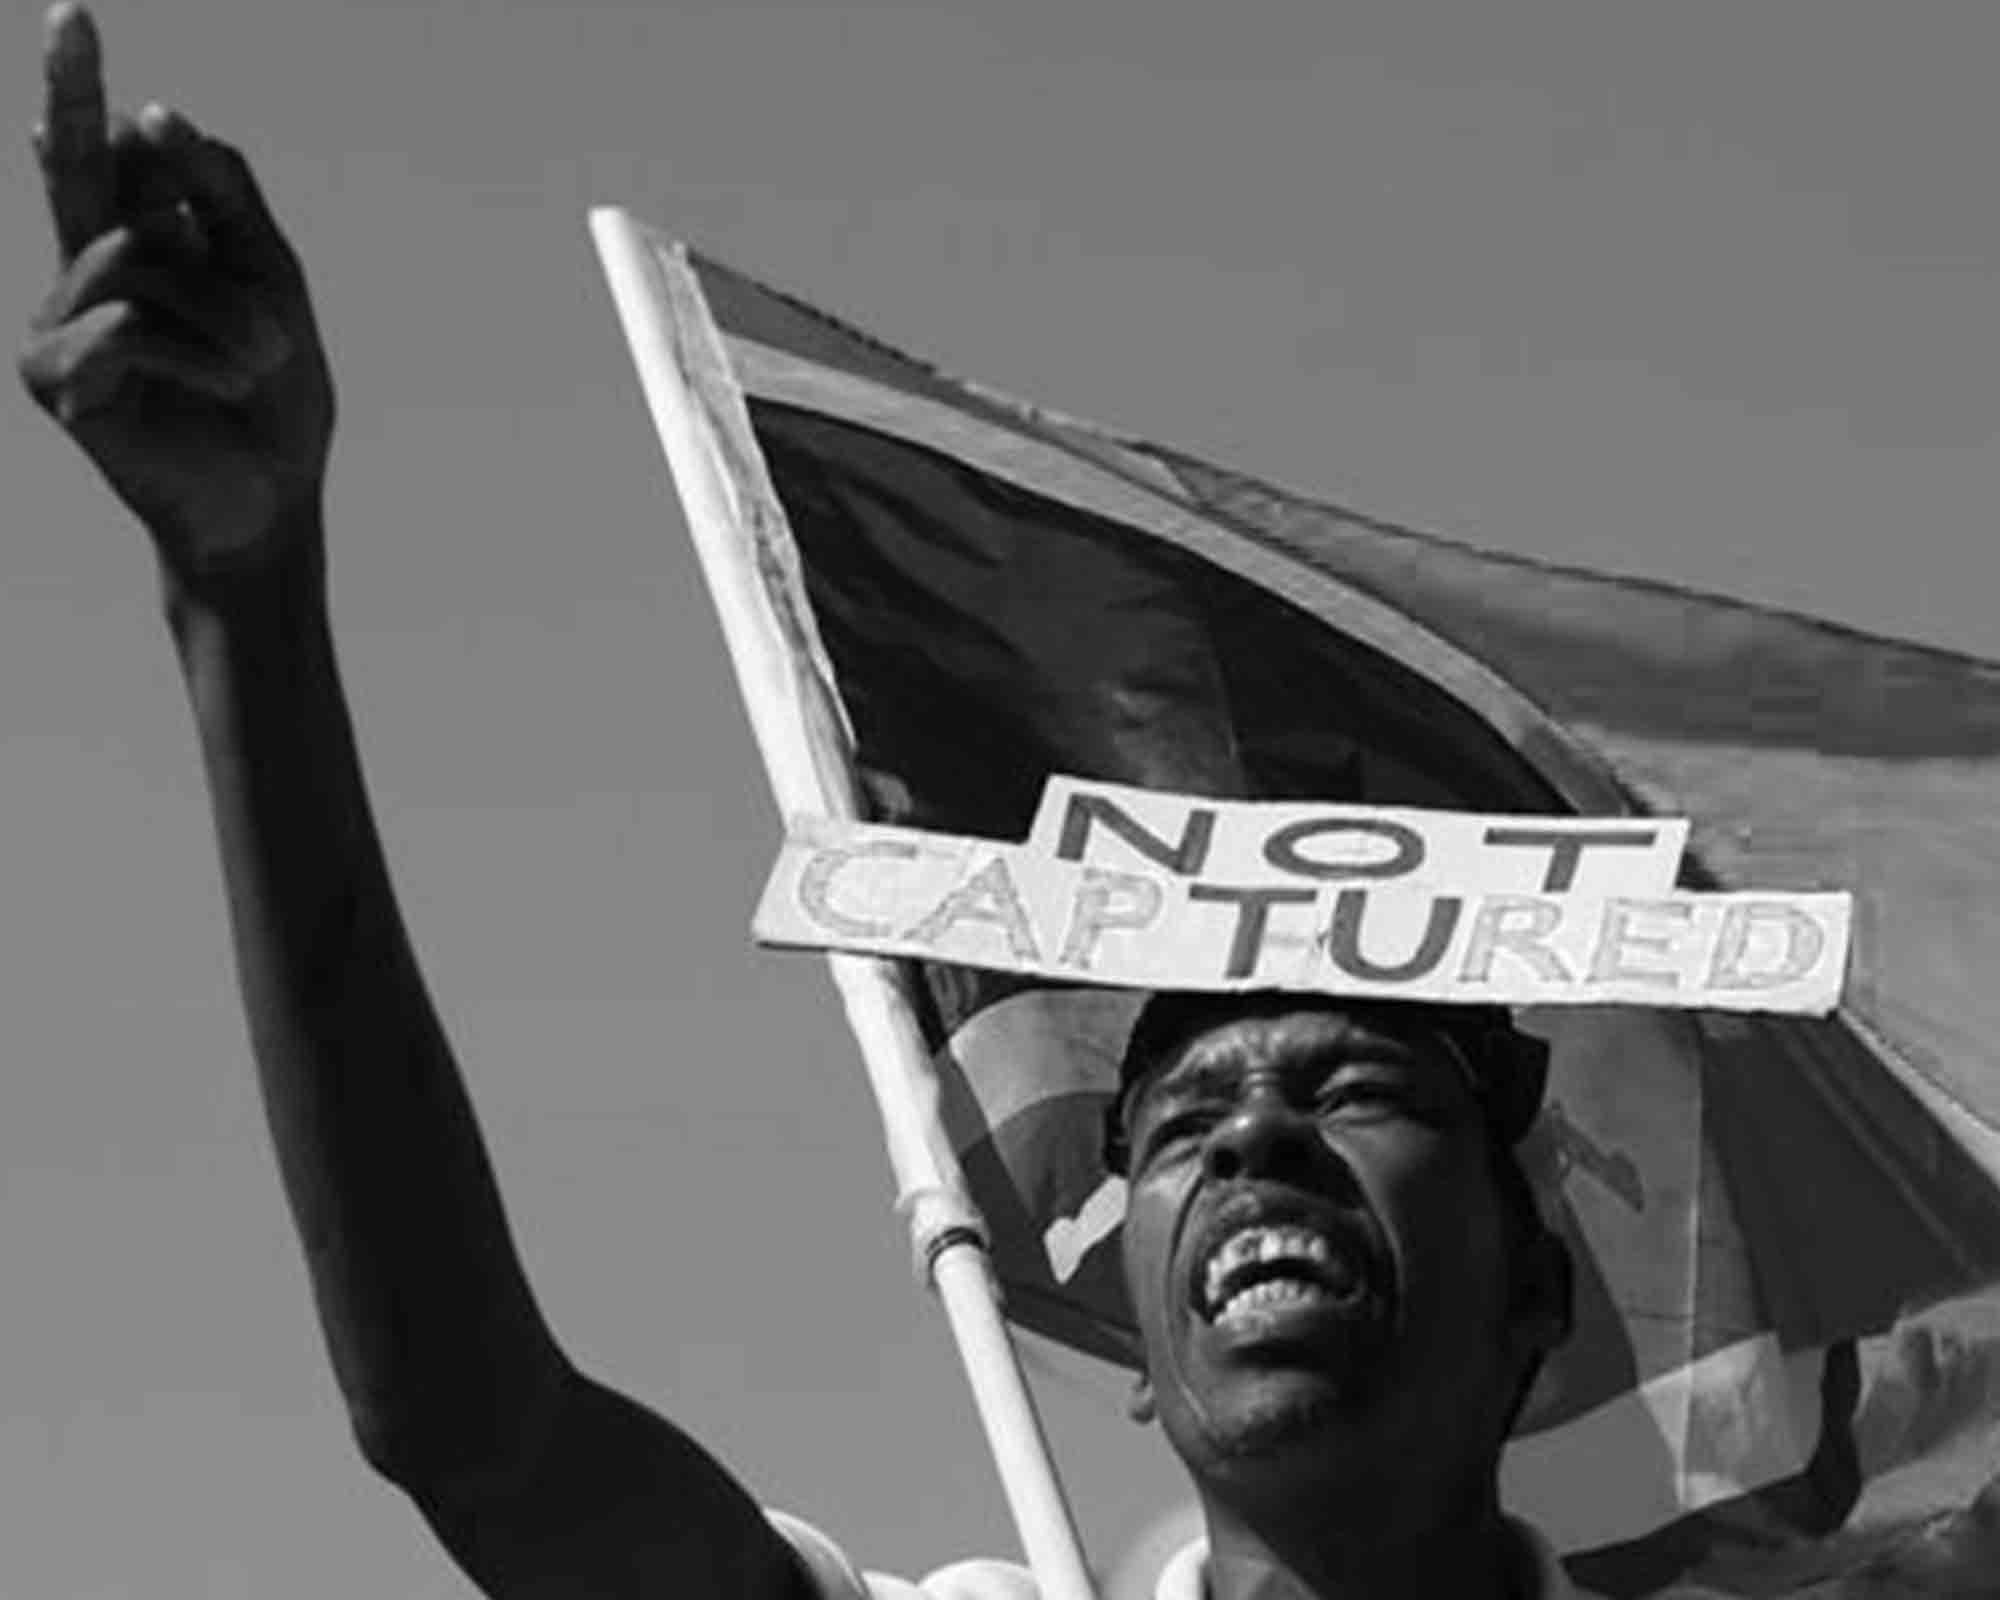 ISS: Policing the police and fighting state capture